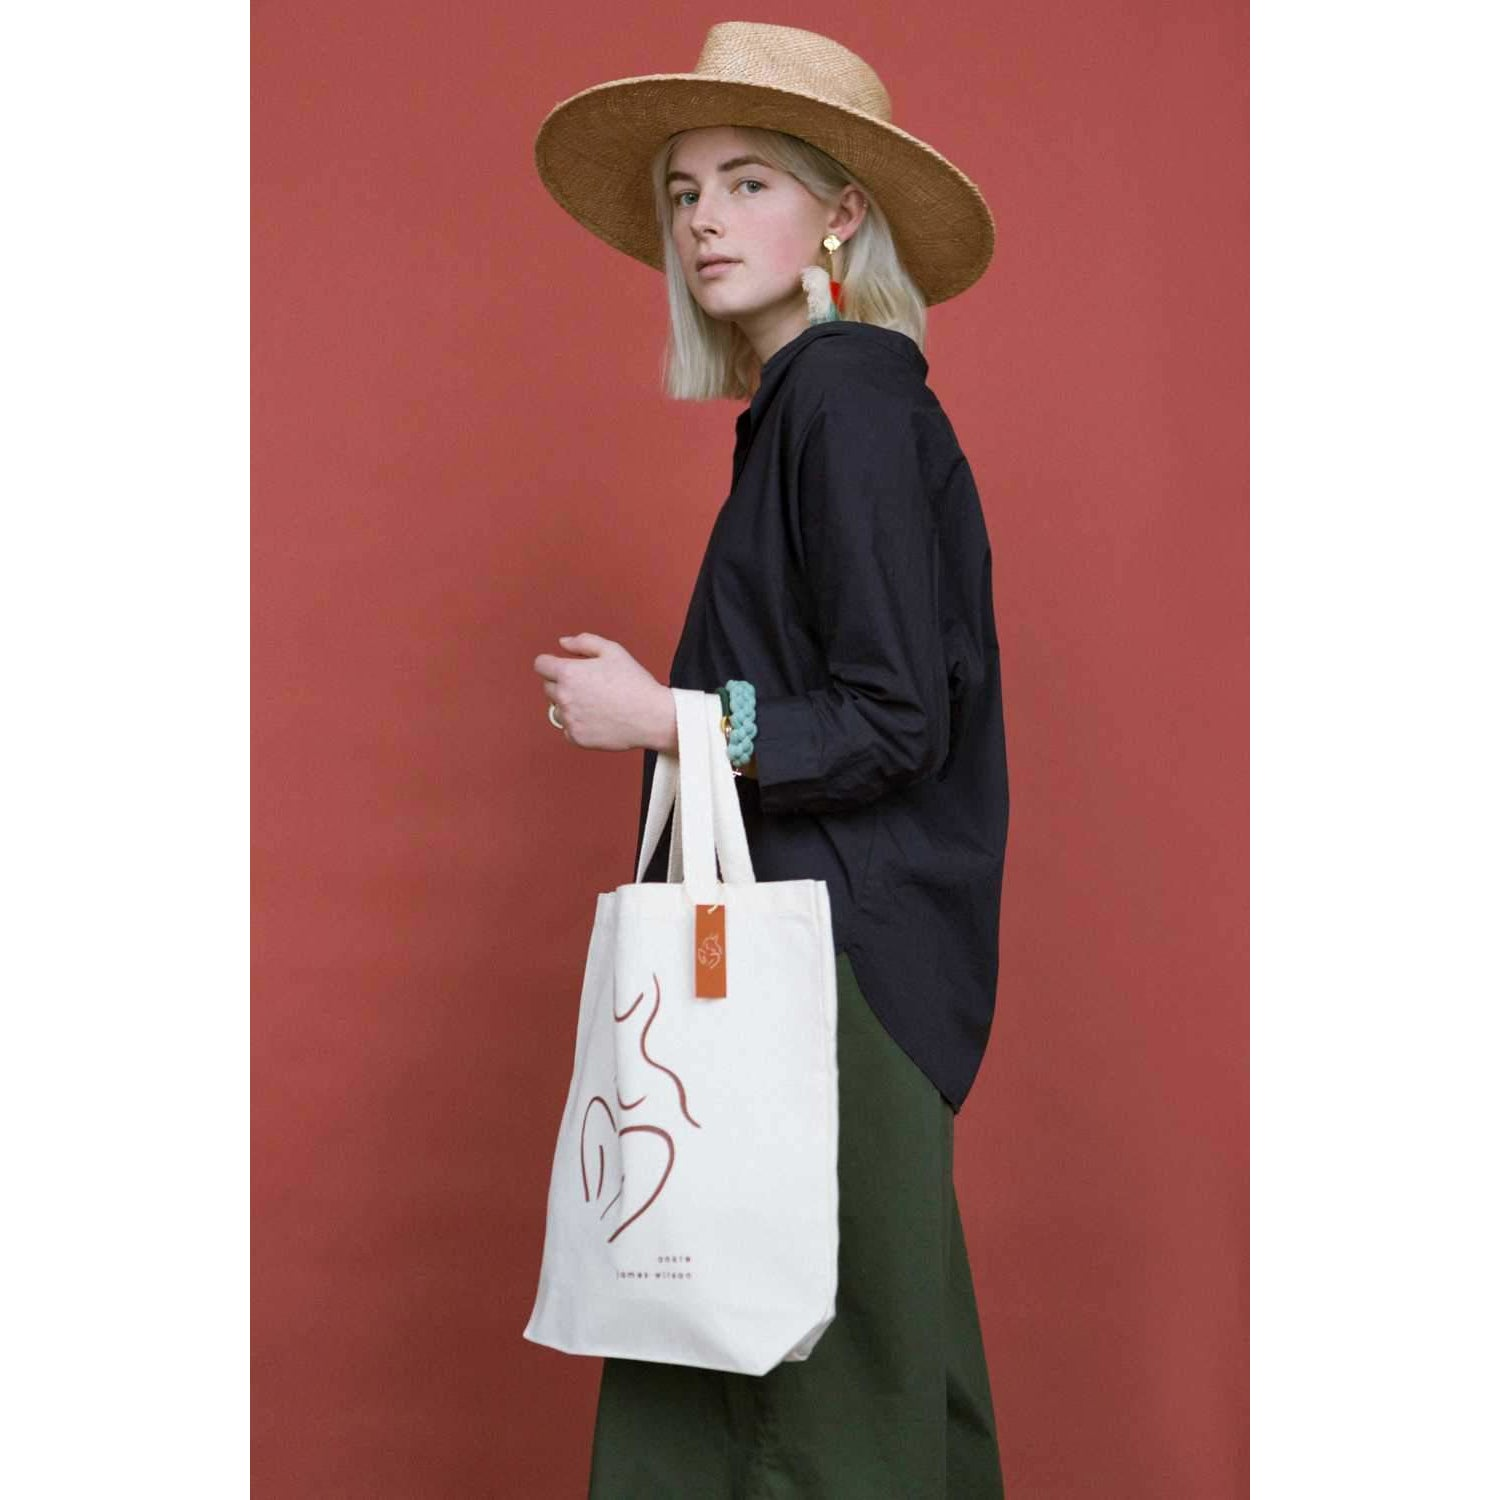 ANKLE x James Wilson — Organic Day Bag - By James Wilson